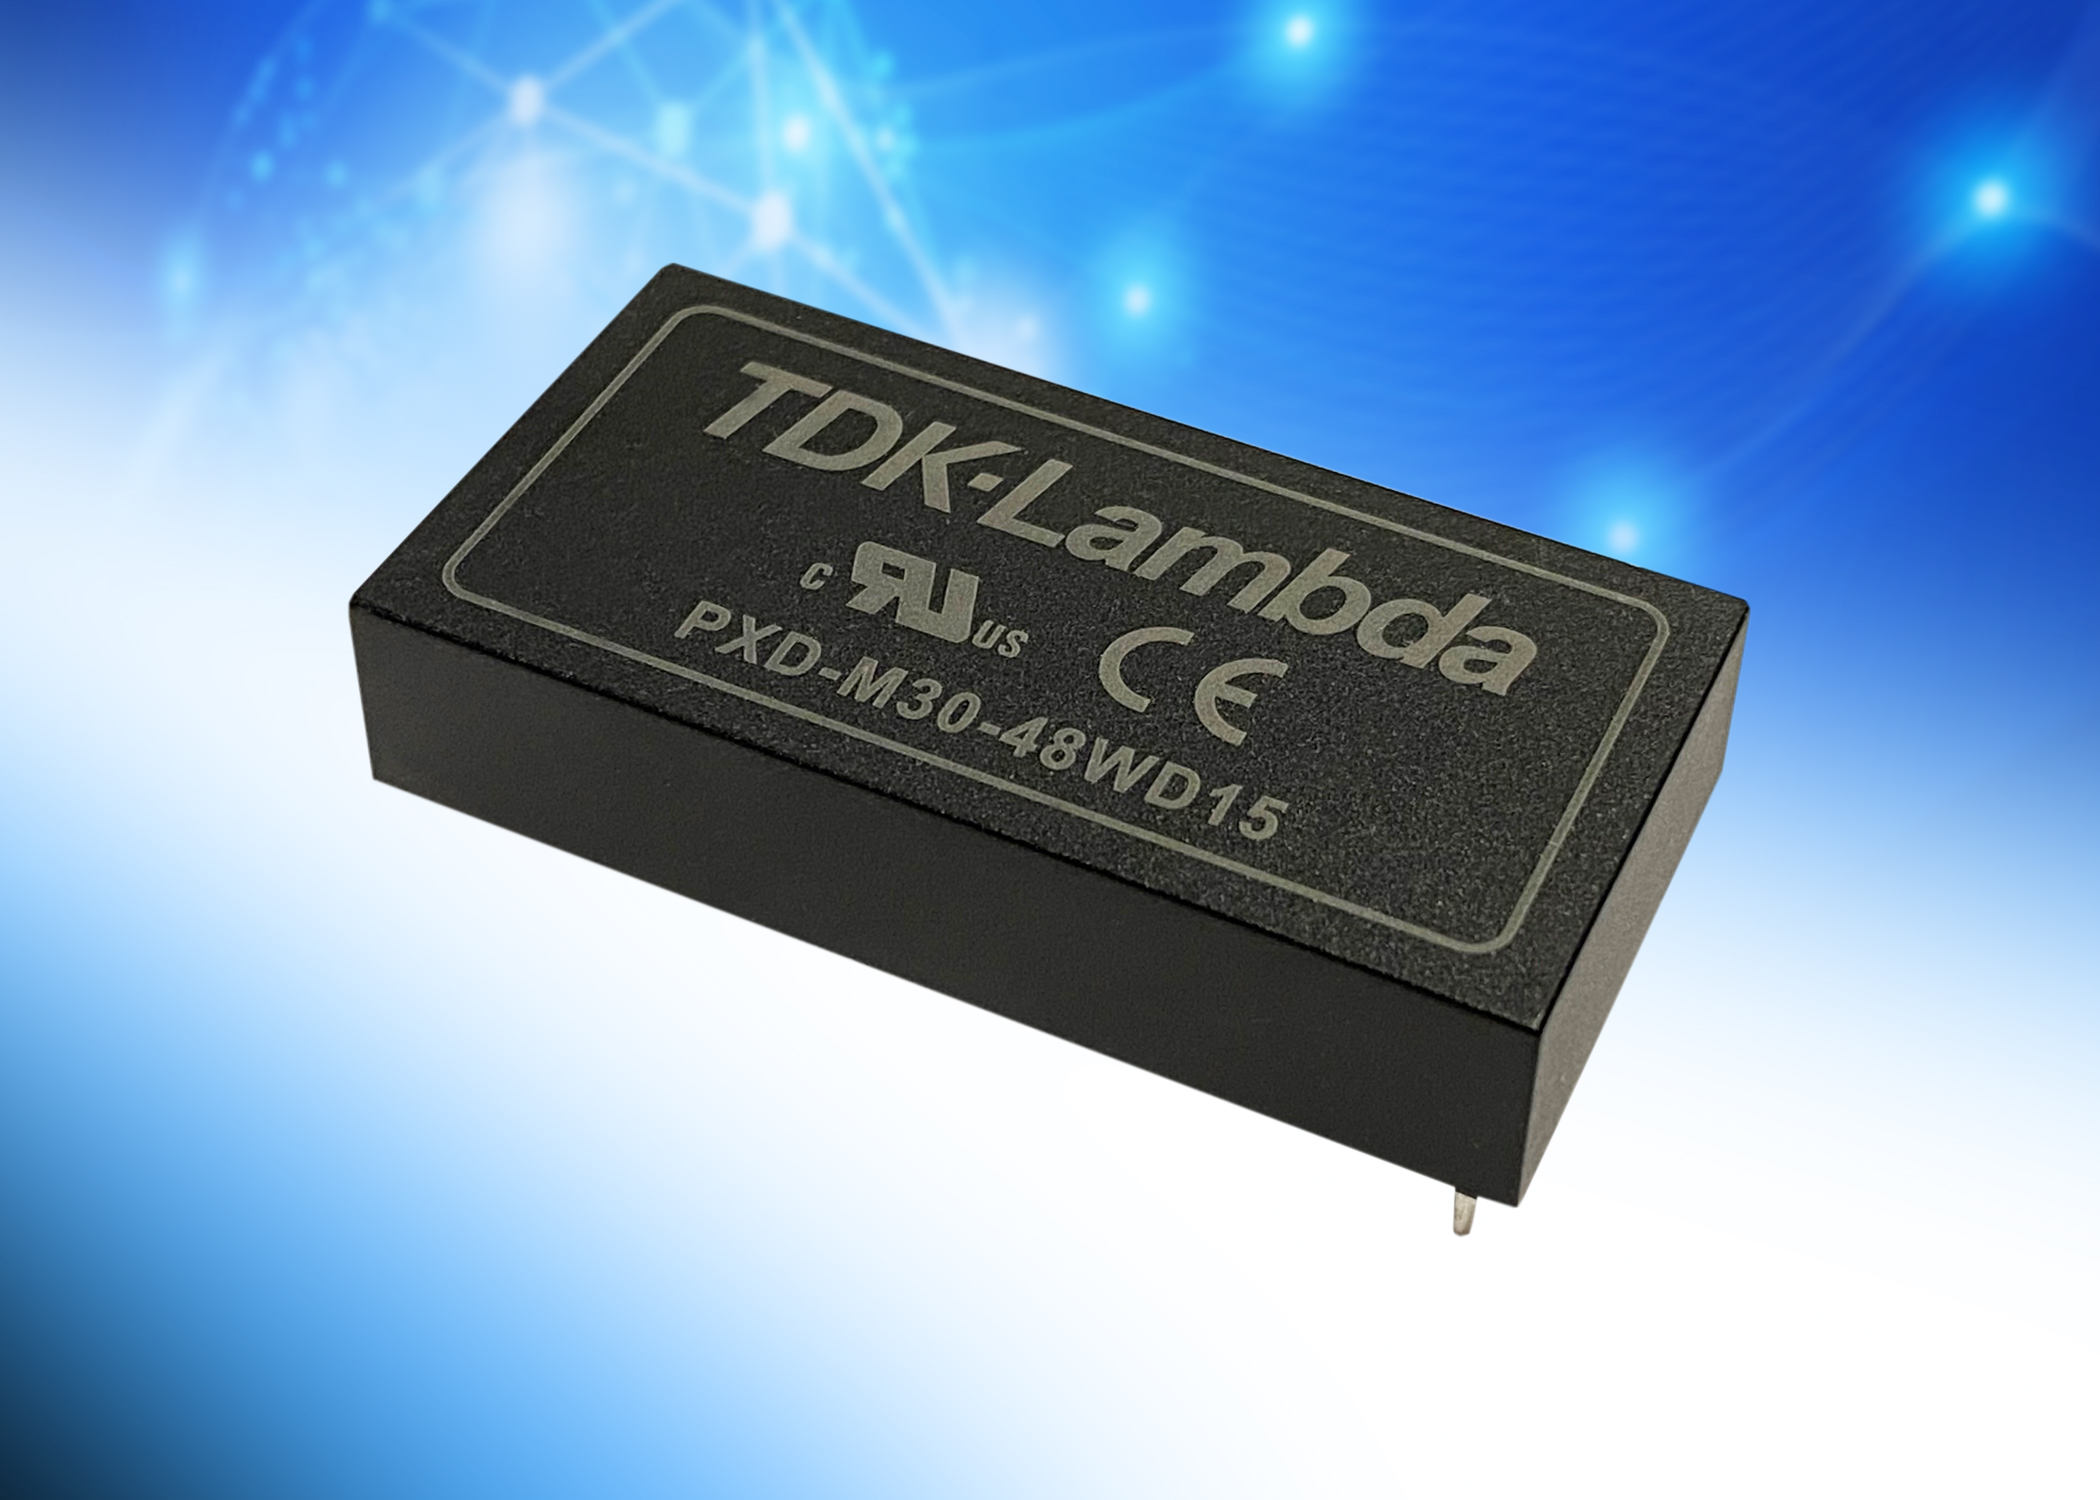 PXD-M30 – 30 W medical and industrial DC-DC converters